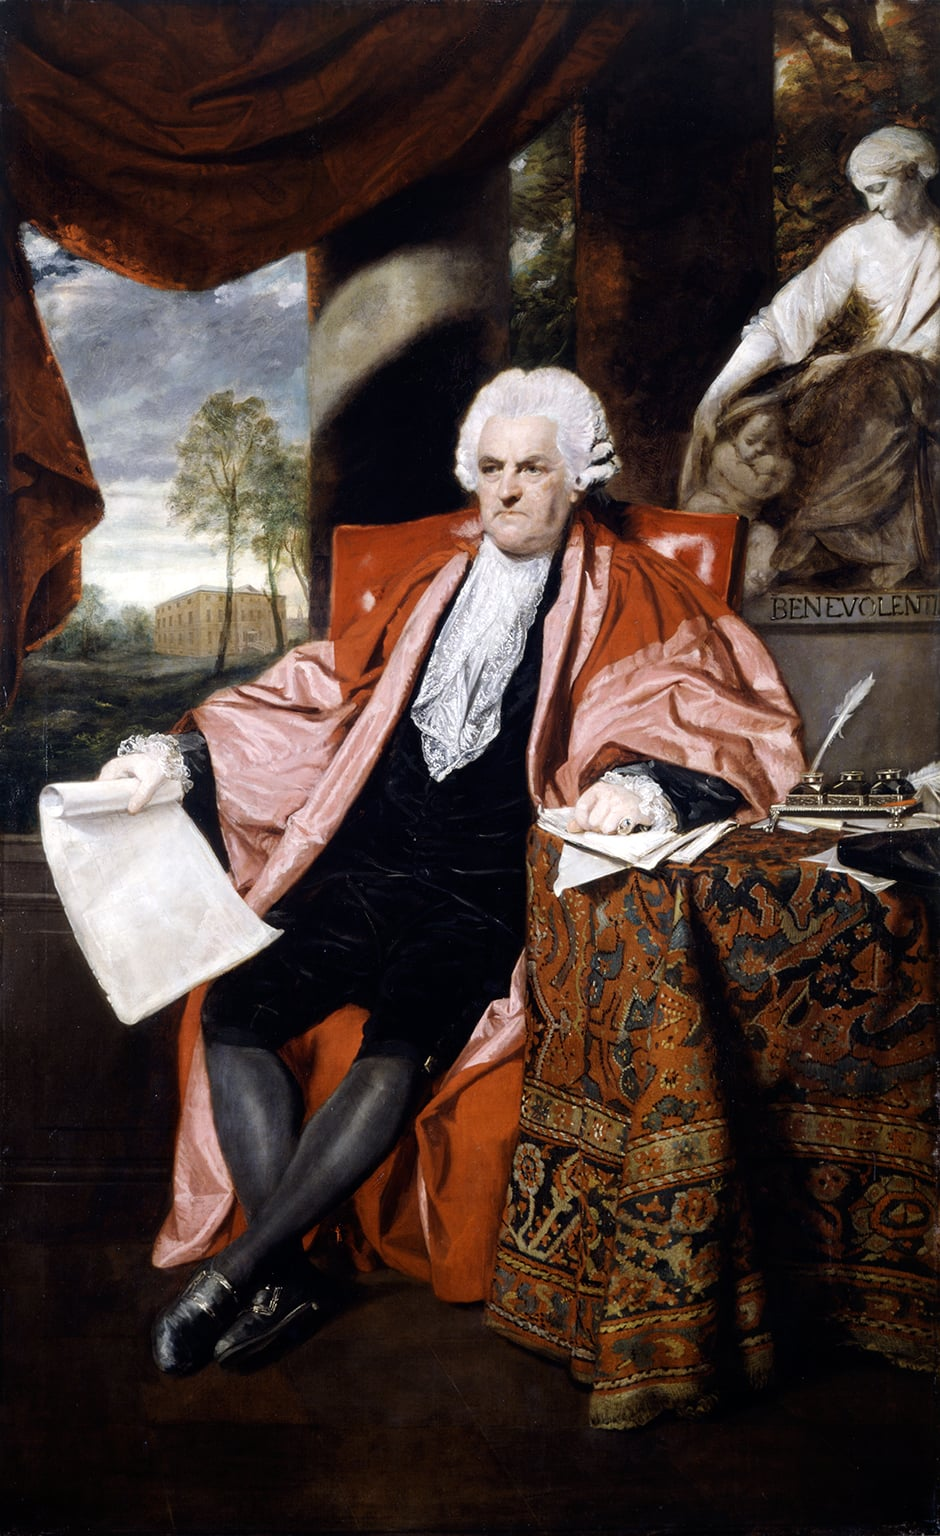 Sir Joshua Reynolds, Portrait of Dr John Ash, 1788 - Acquired with assistance from the Wolfson Foundation in 2012